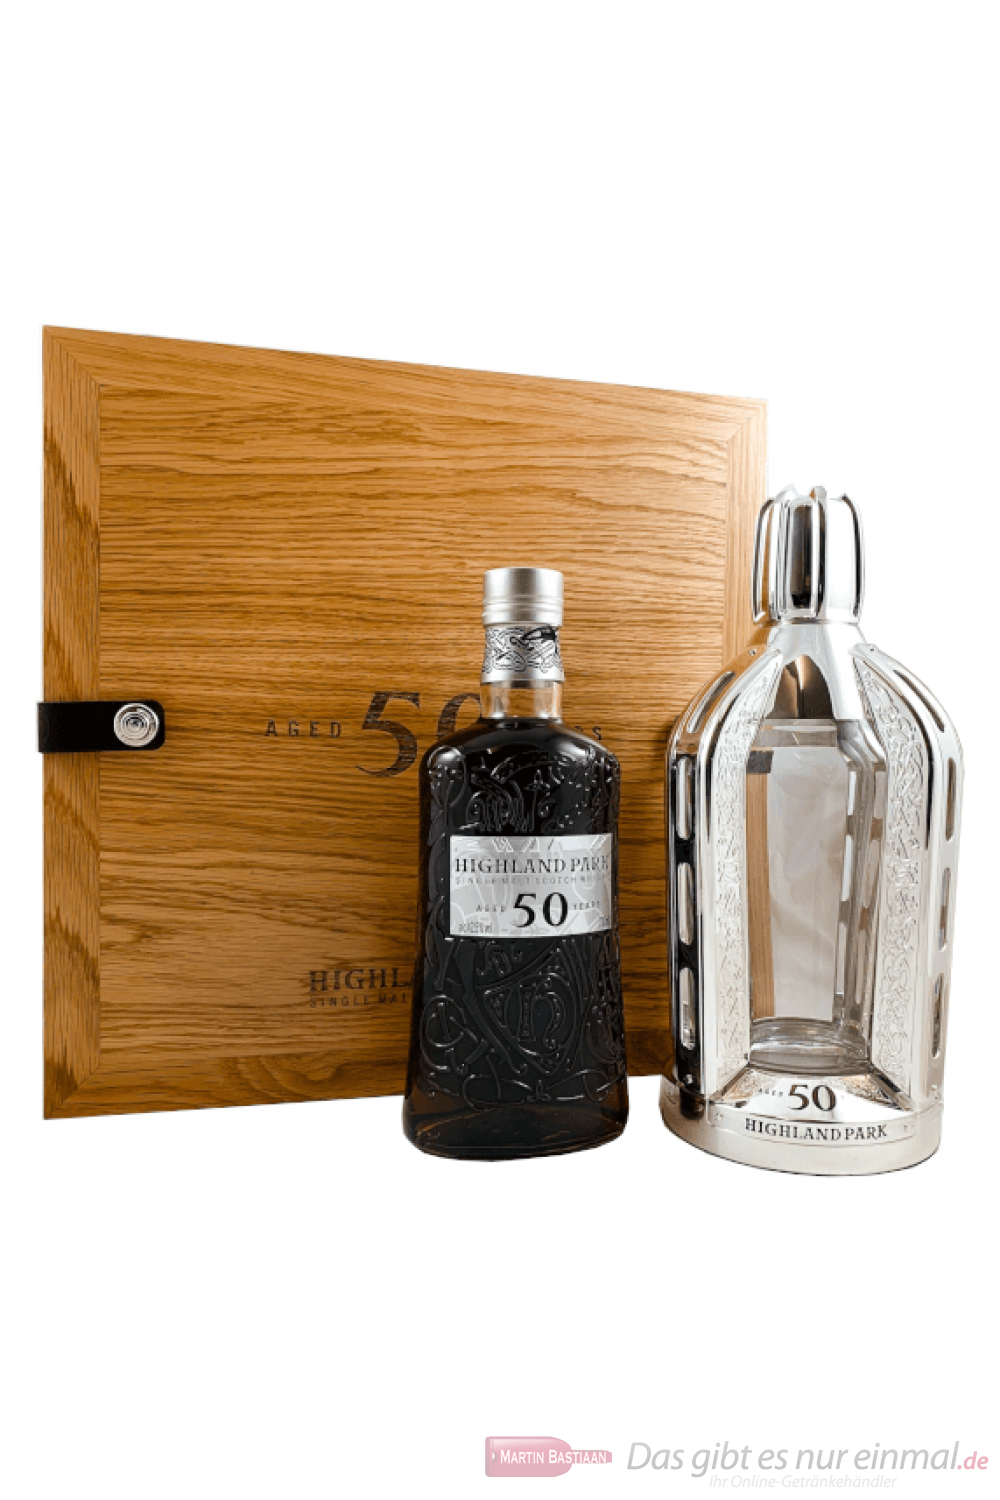 Highland Park 50 Years Single Malt Scotch Whisky 0,7l